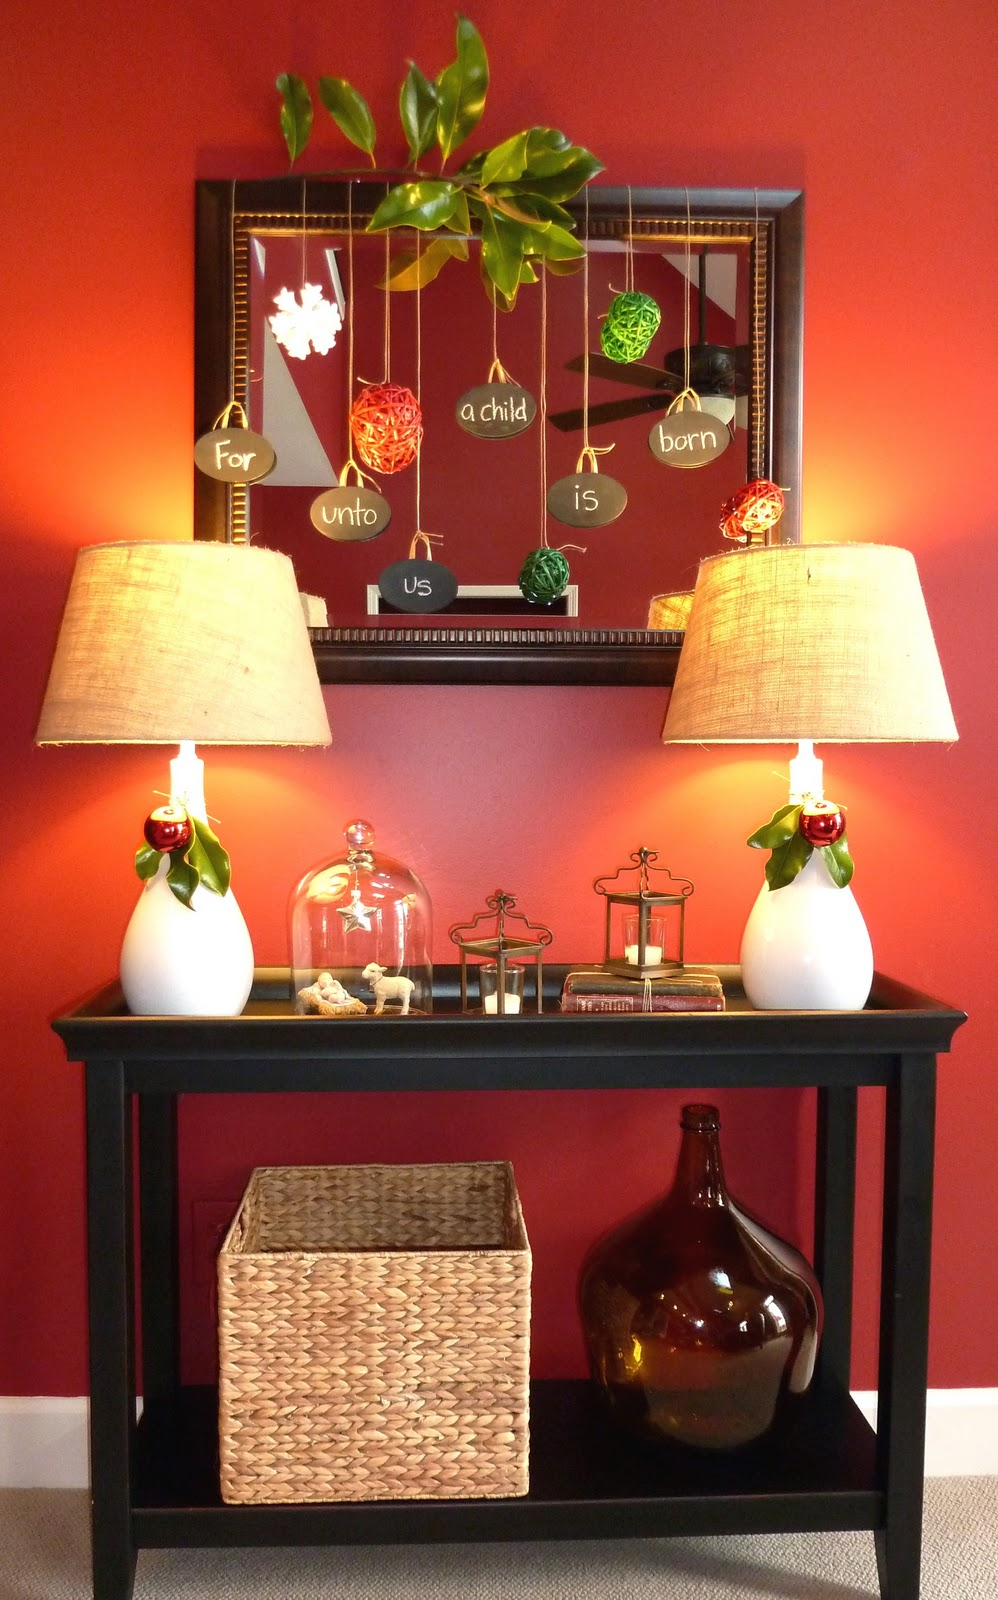 Fun And Traditional Christmas Hallway Decor Using A Pier 1 Console Table And Sea